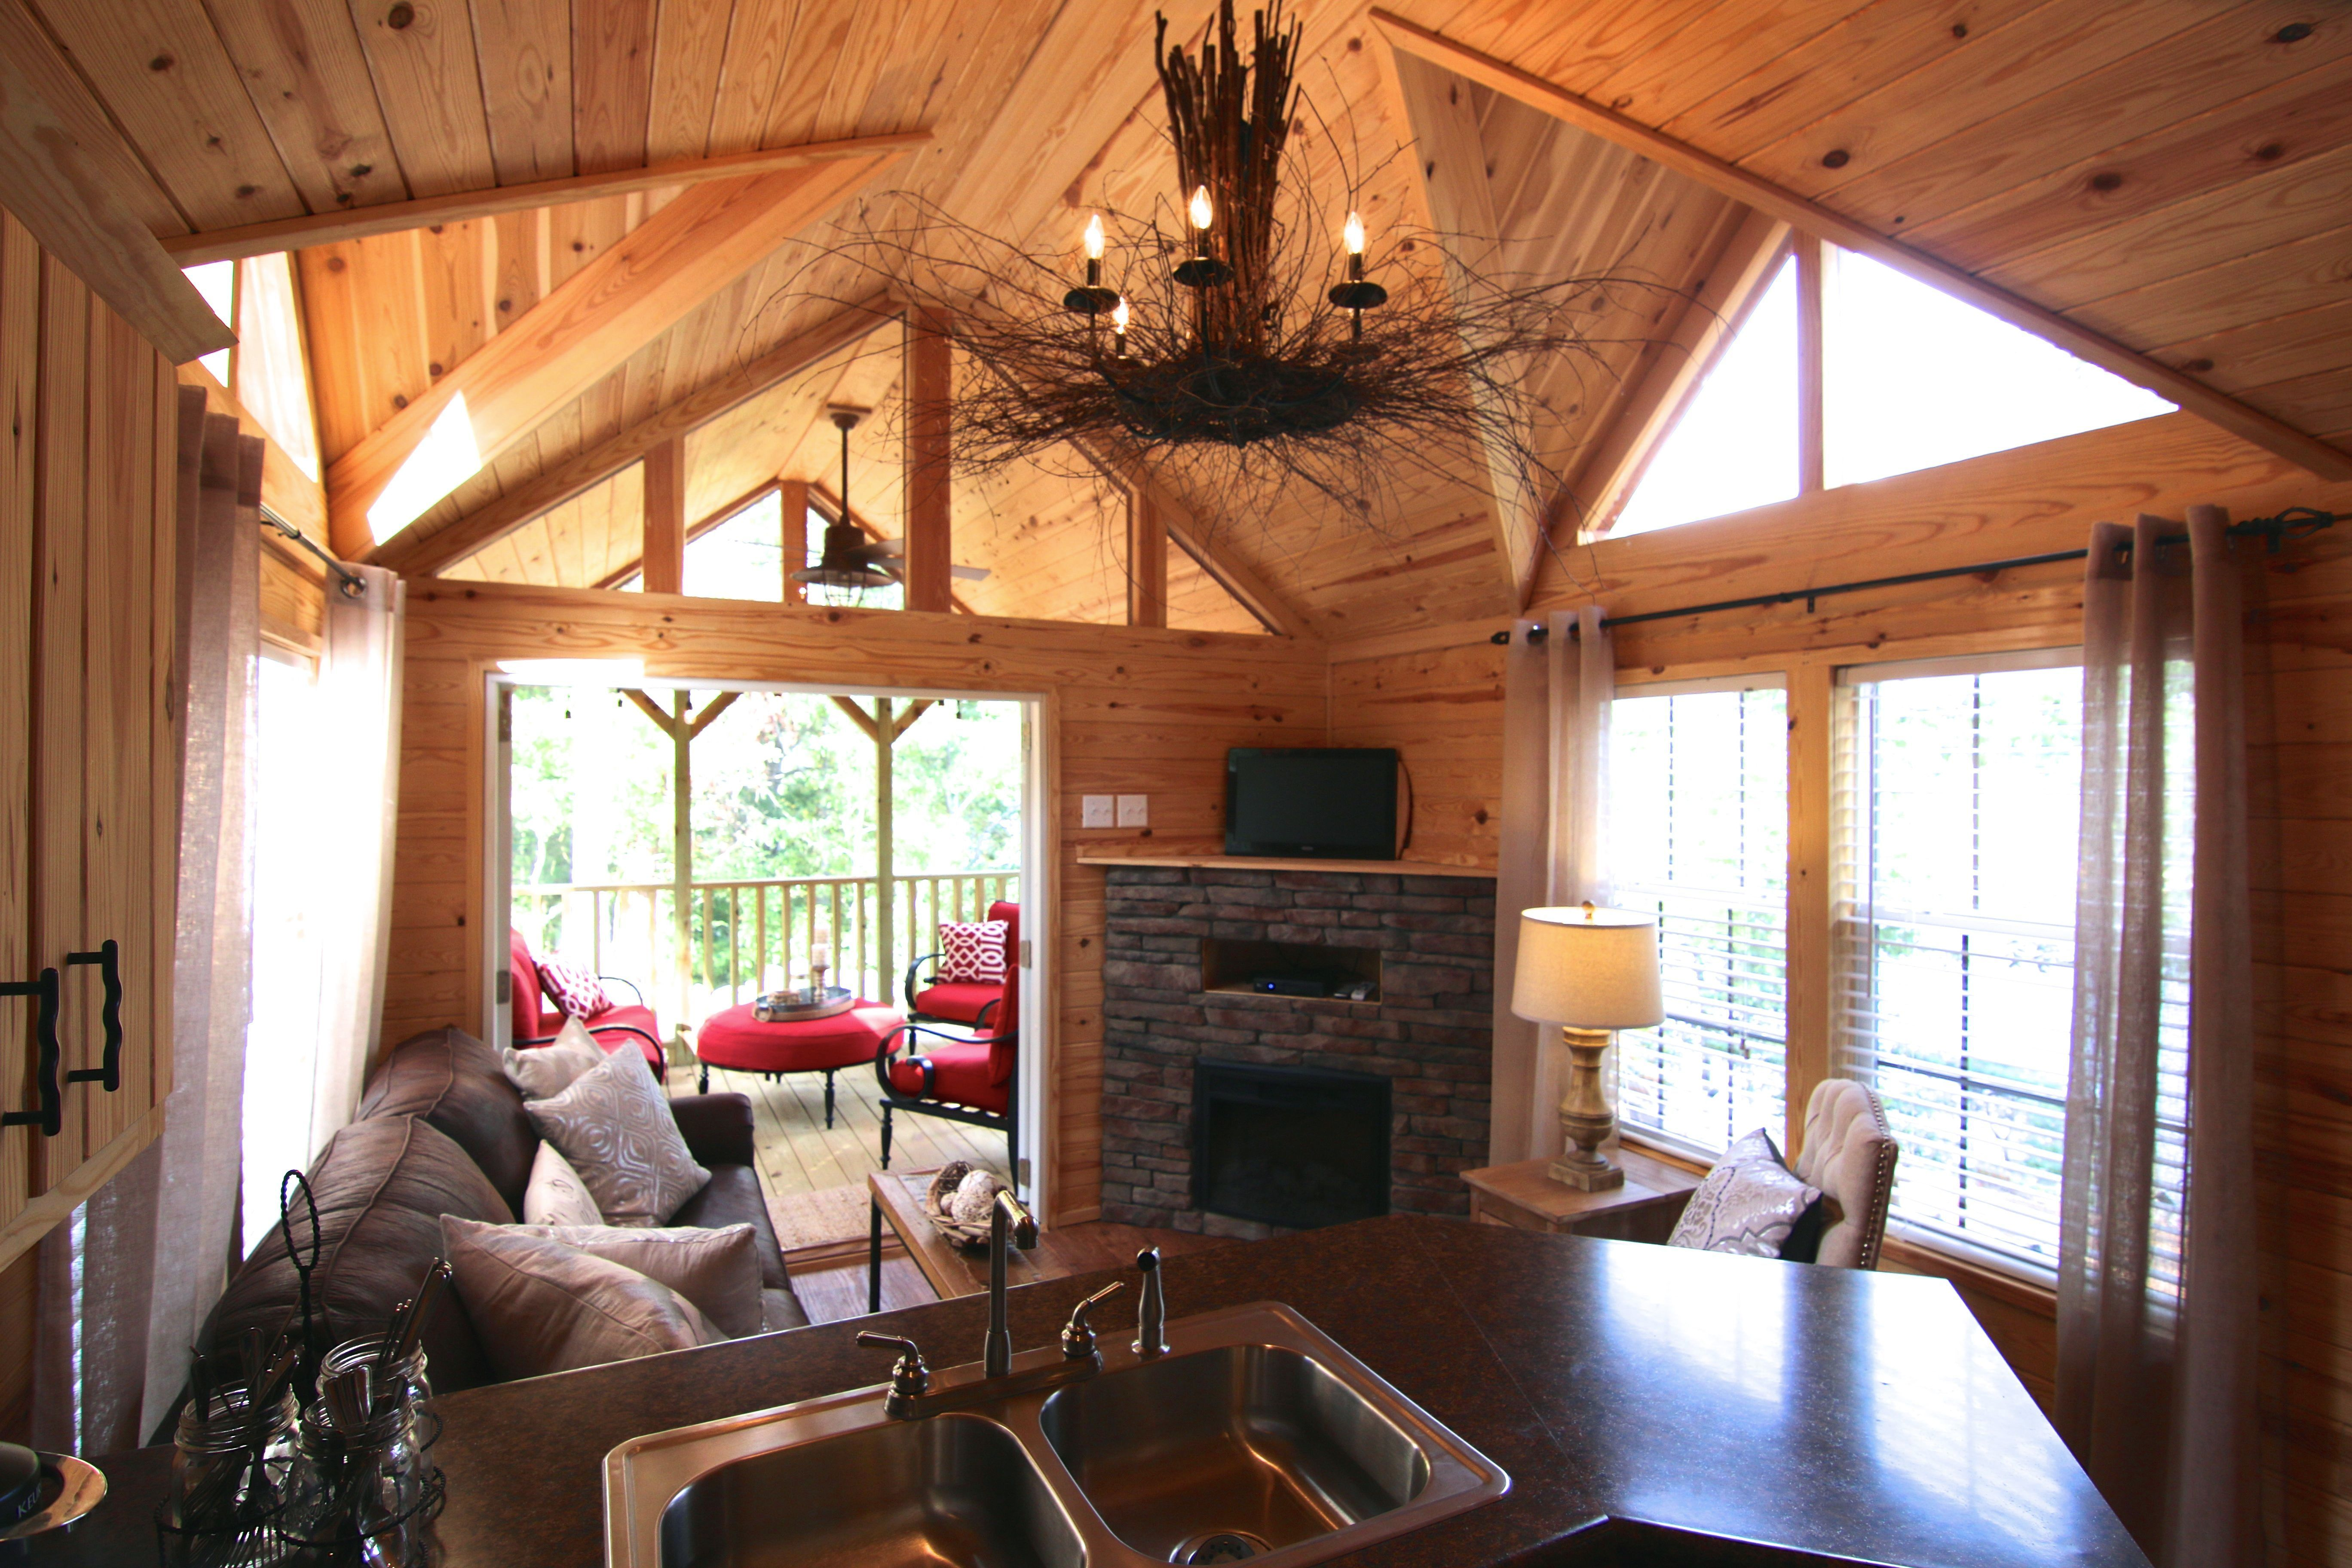 A Park Model Cabin Built By Rustic River Park Homes In